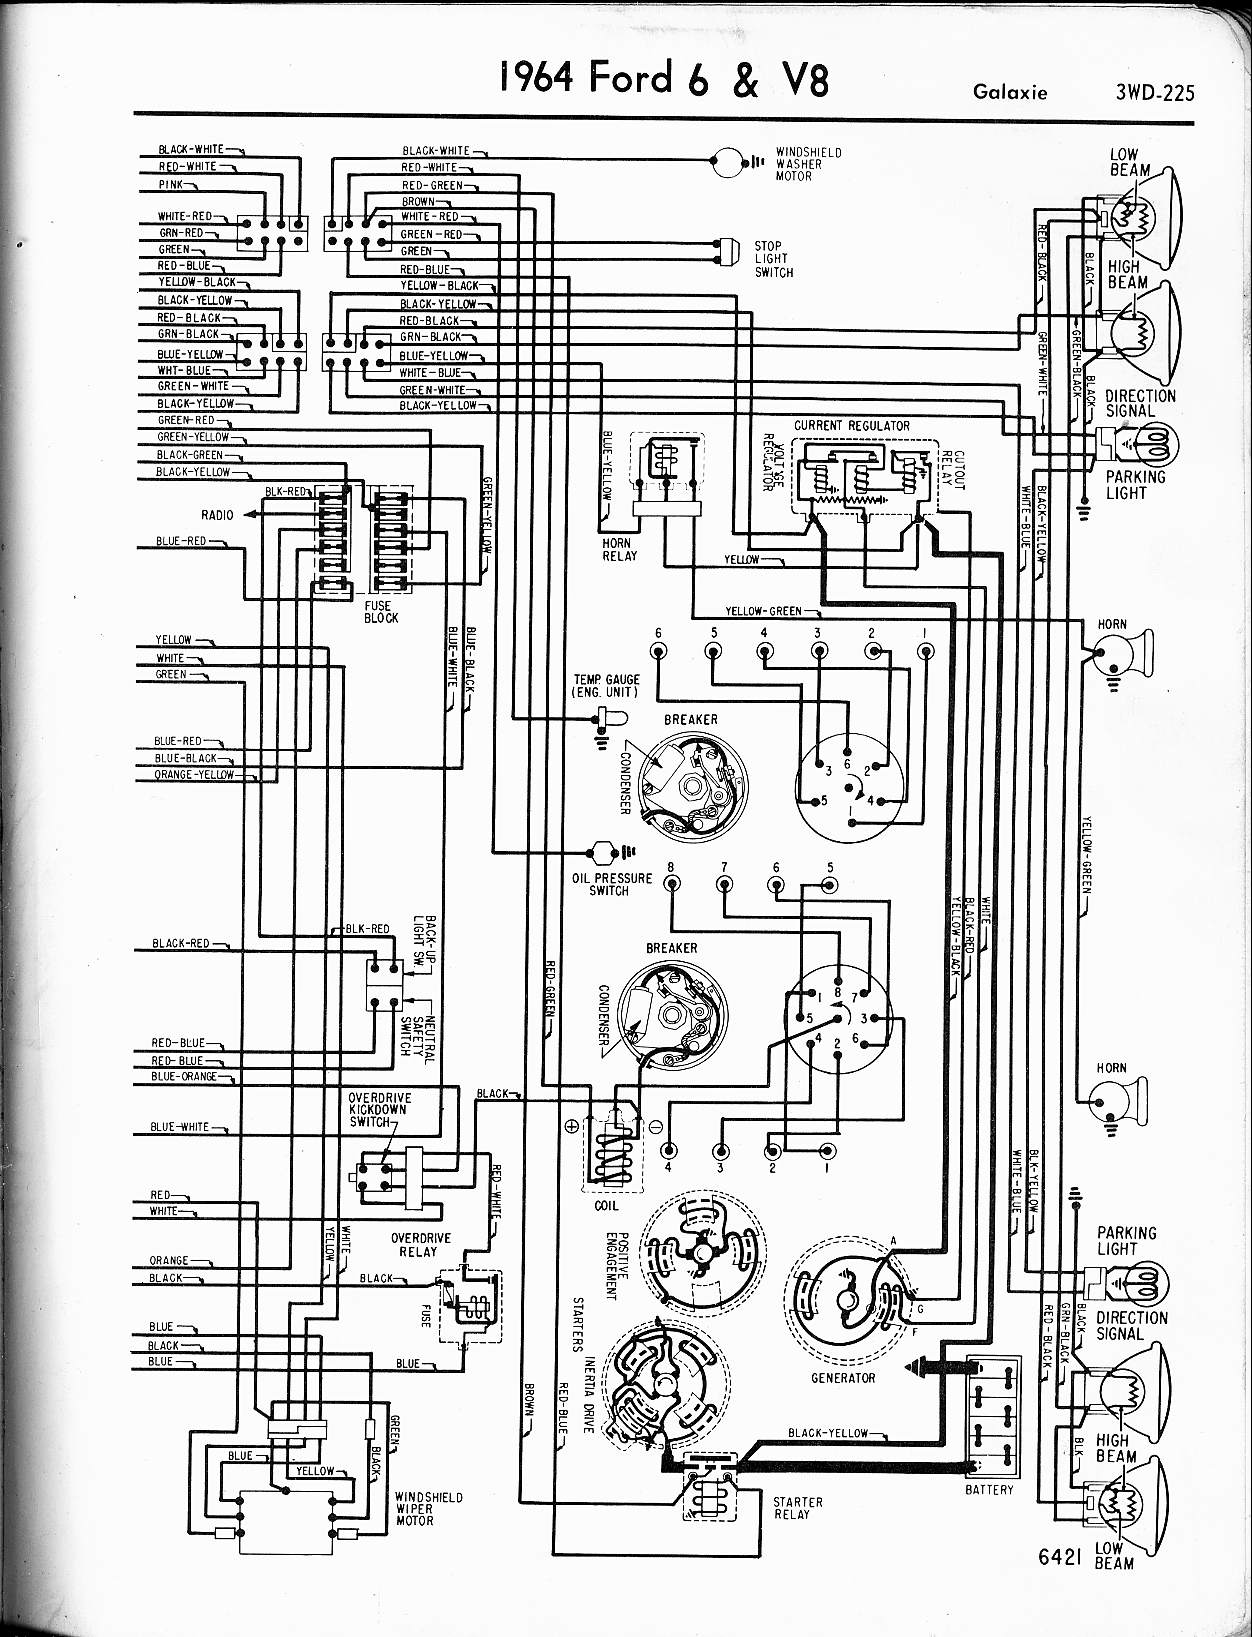 57-65 Ford Wiring Diagrams on 1962 ford thunderbird wiring diagram, 1965 ford mustang wiring diagram, 1966 ford thunderbird wiring diagram, 1969 ford mustang wiring diagram, 1970 ford mustang wiring diagram, 1979 ford bronco wiring diagram, 1973 ford mustang wiring diagram, 1955 ford thunderbird wiring diagram, 1963 ford galaxie parts catalog, 1967 ford mustang wiring diagram, 1971 ford mustang wiring diagram, 1962 ford falcon wiring diagram, 1966 ford mustang wiring diagram, 1960 ford thunderbird wiring diagram, 1960 ford falcon wiring diagram,